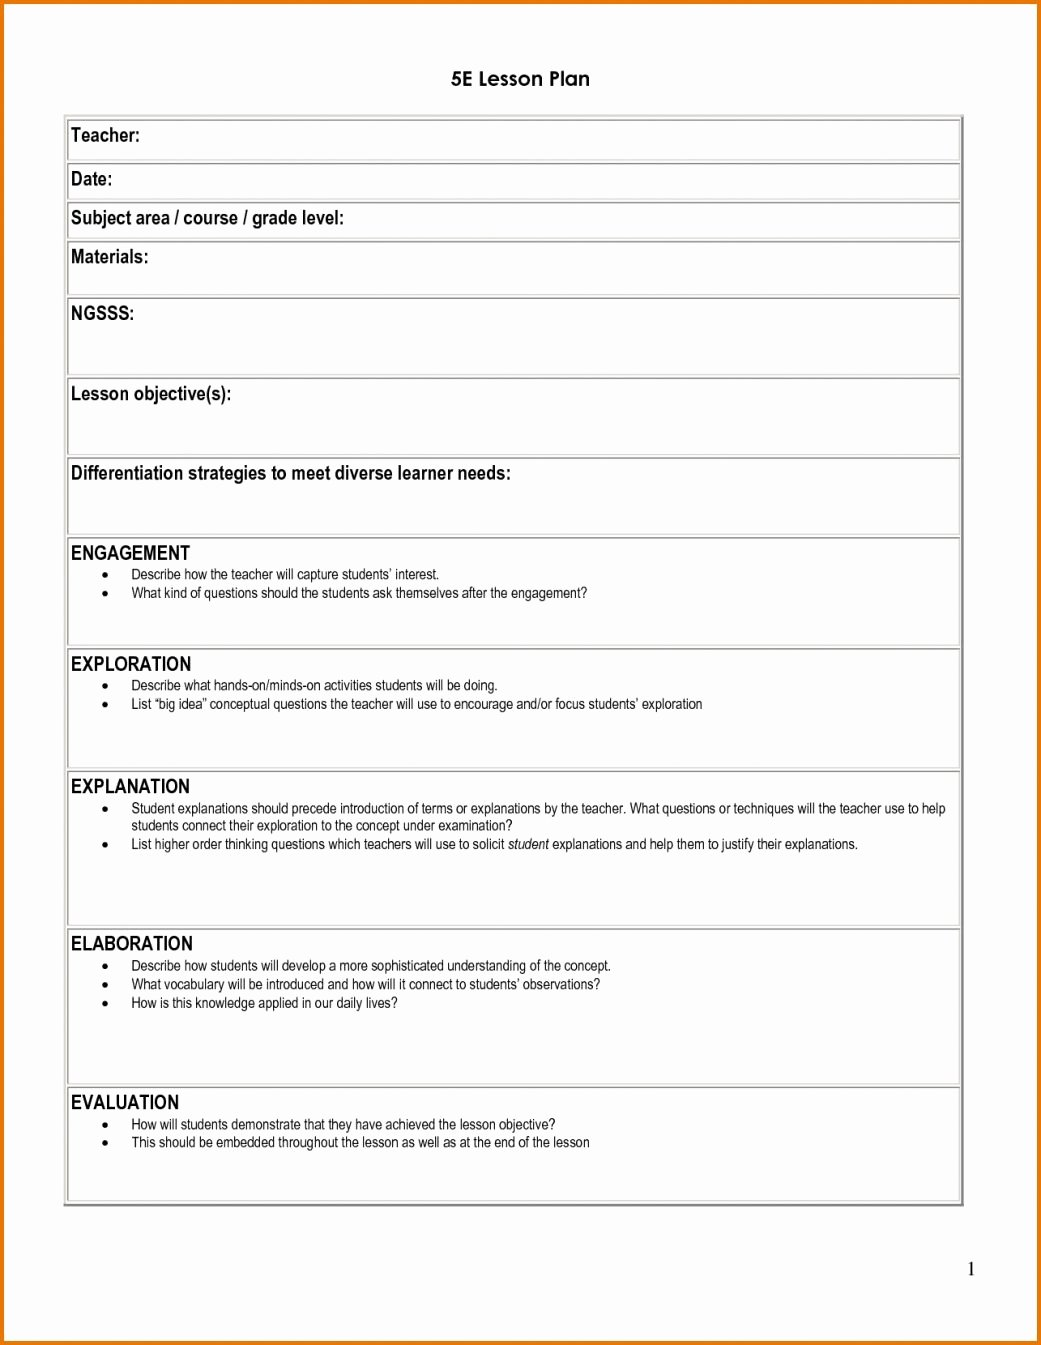 Five E Lesson Plan Template Elegant 5 E Lesson Plan Template Classroom